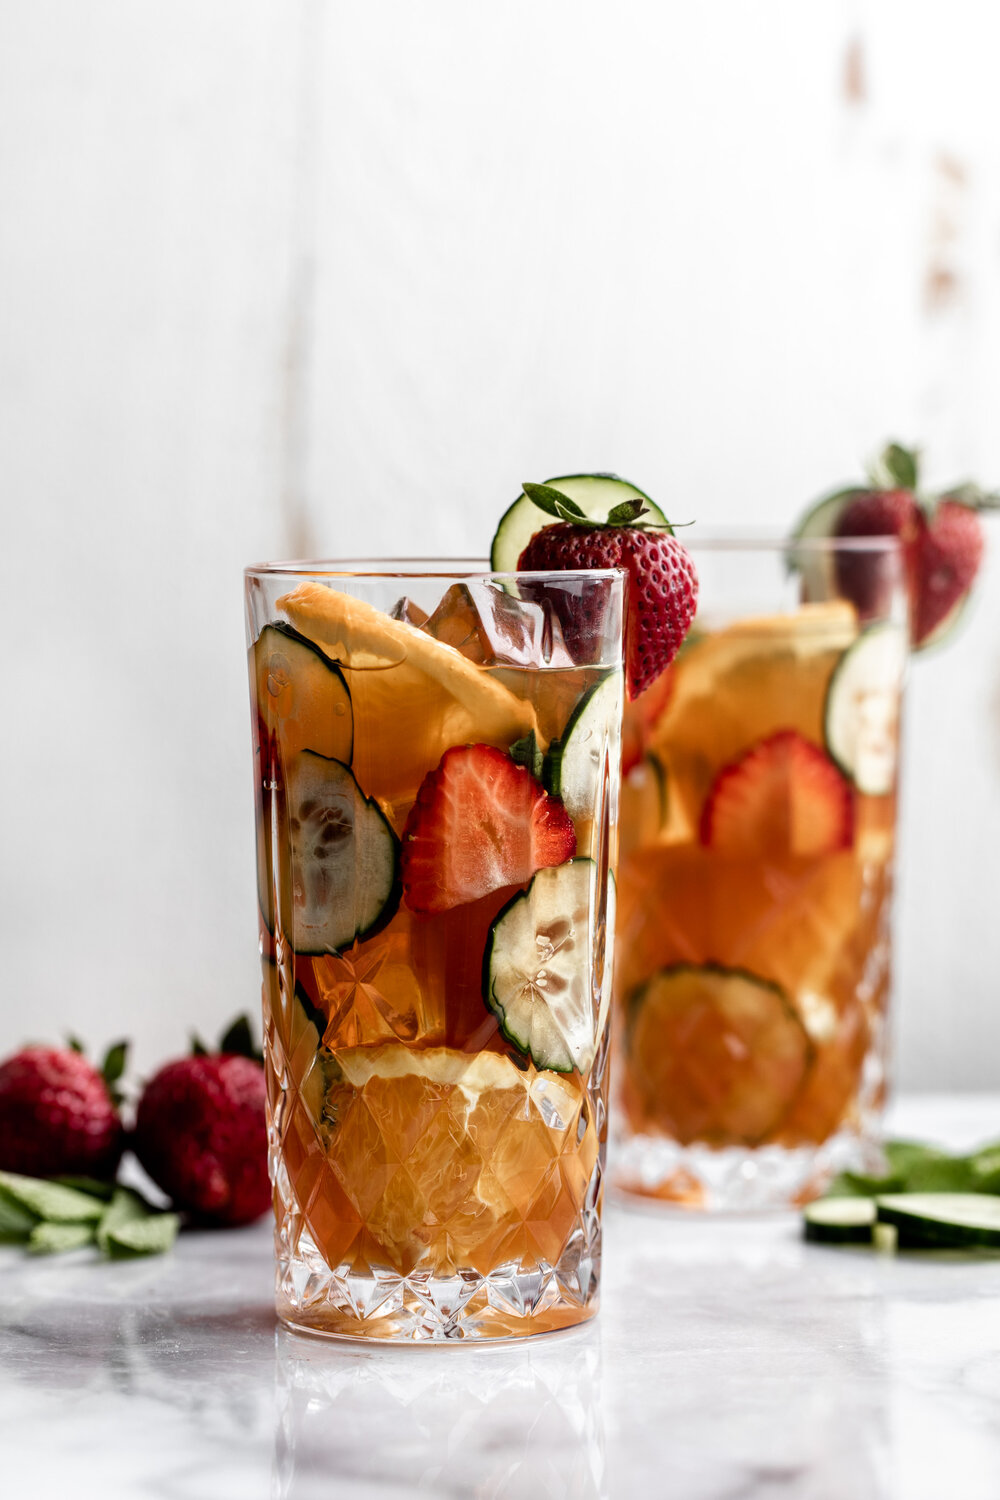 Pimm's Cup with fresh strawberries cucumber and orange slices in a crystal high ball glass